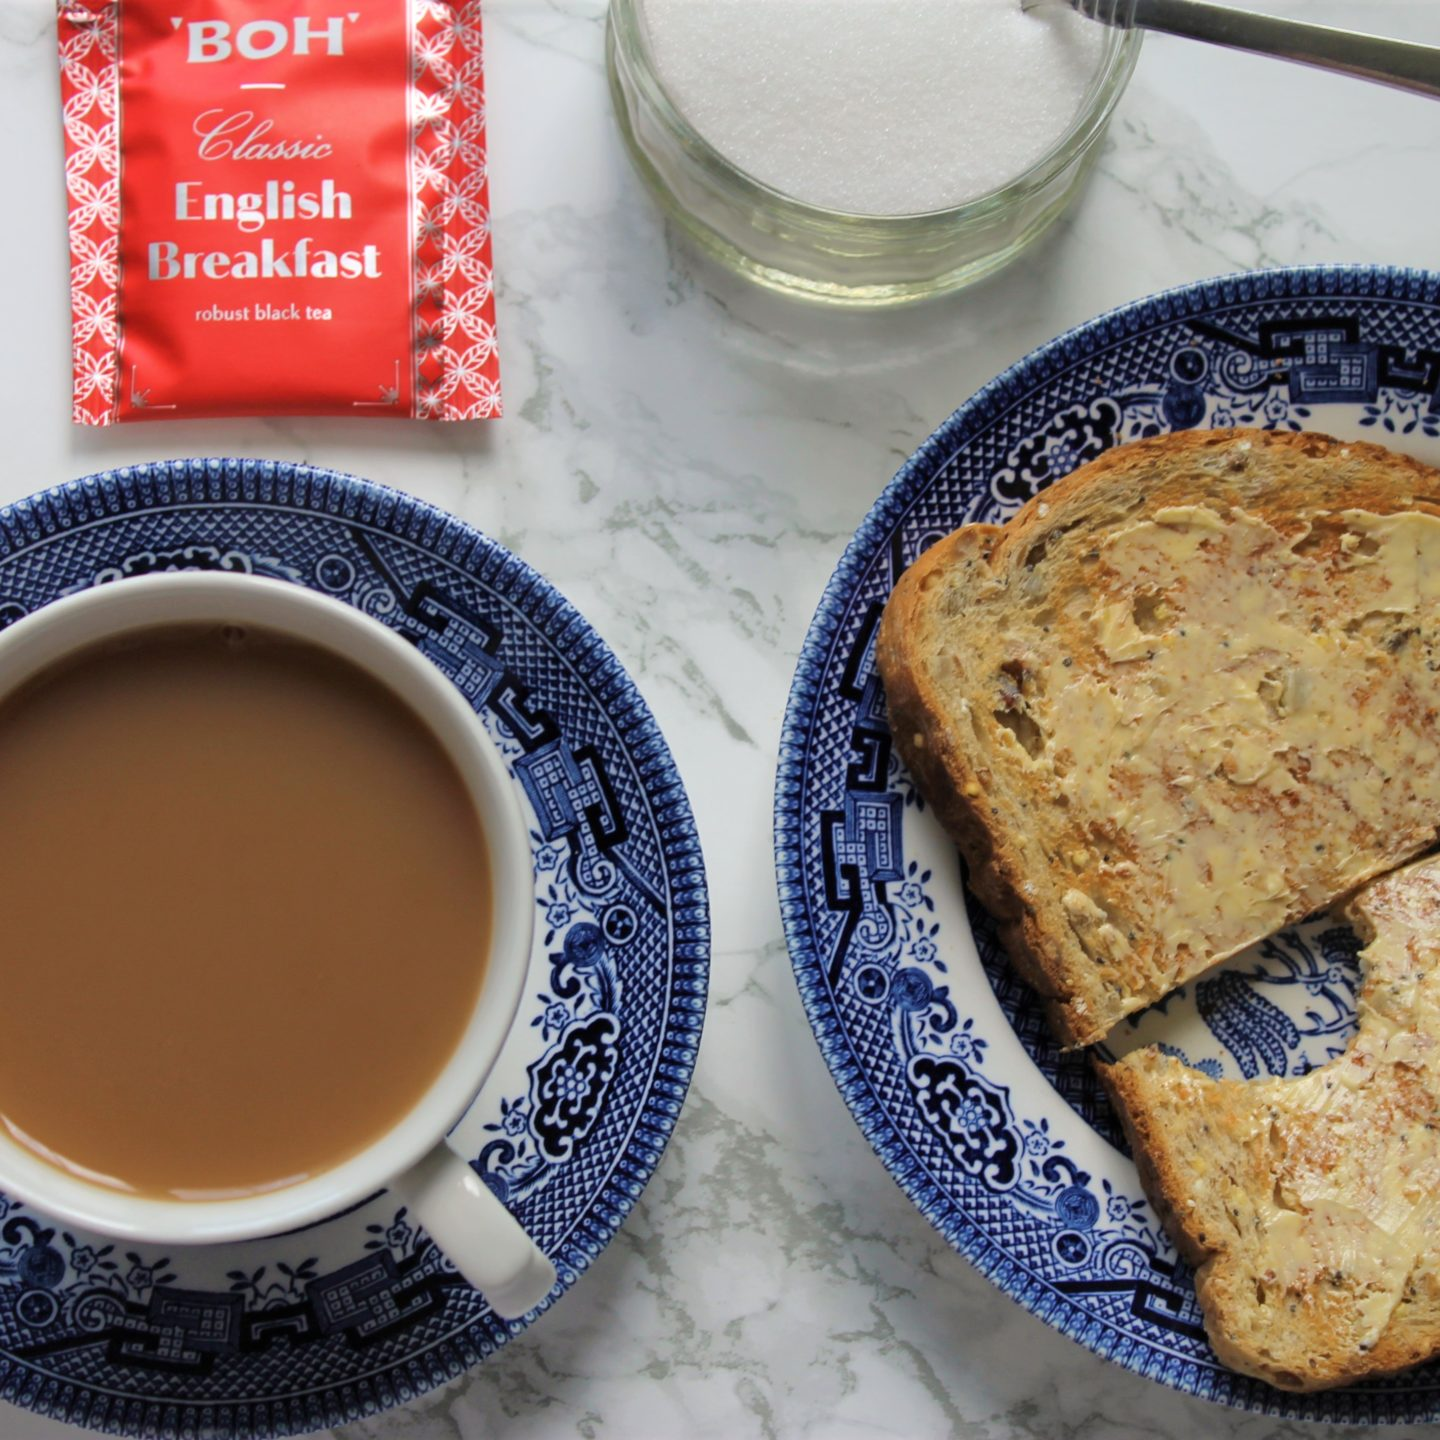 BOH English Breakfast Tea Review